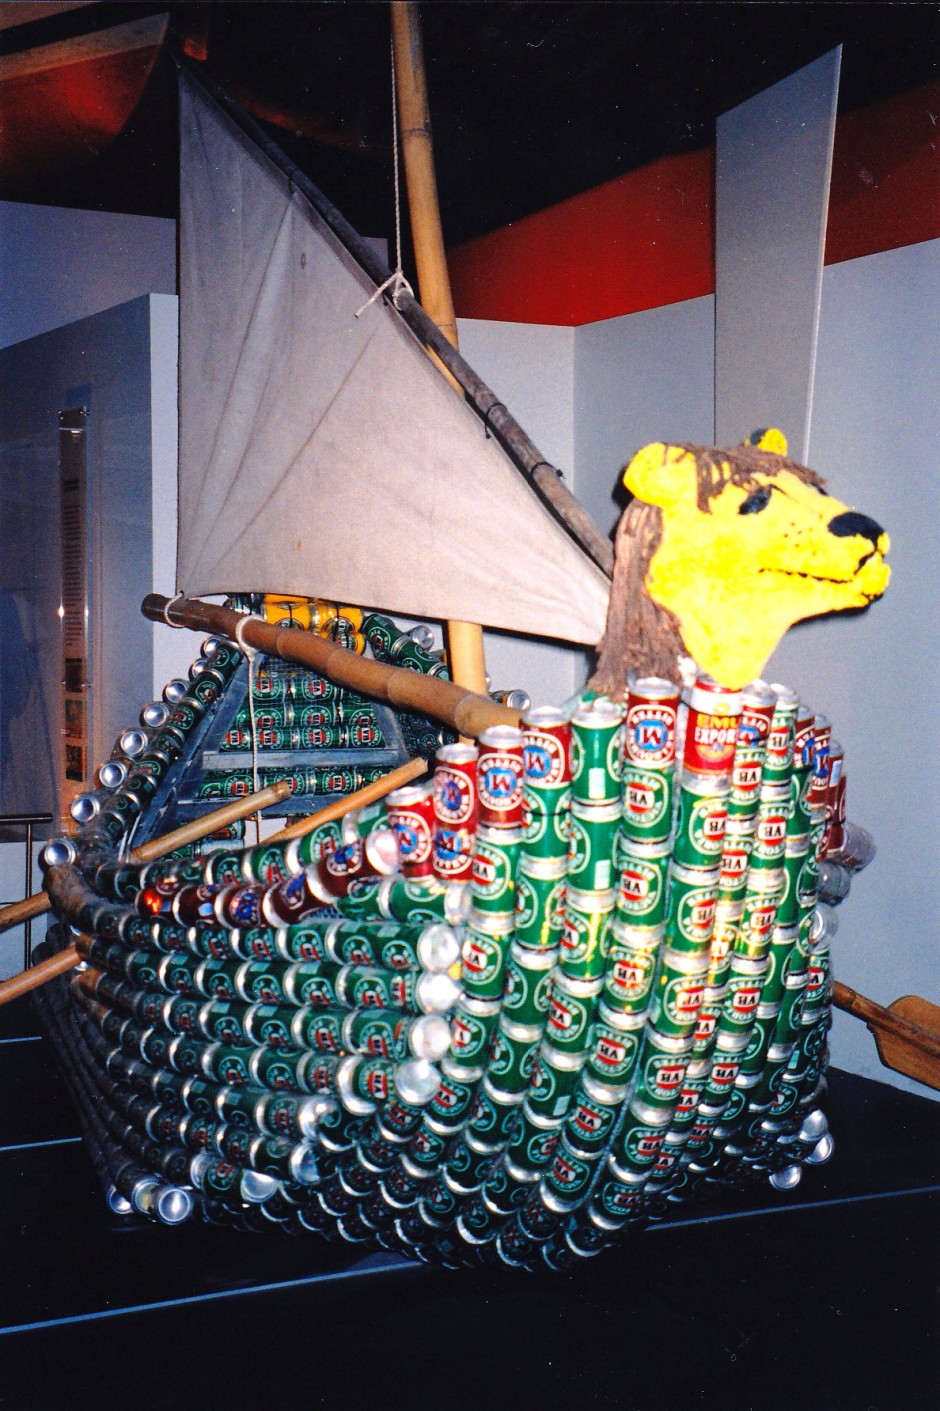 Darwin, Beer Can Regatta, Tinnie Boat, Maryann Adair, Is It Art?